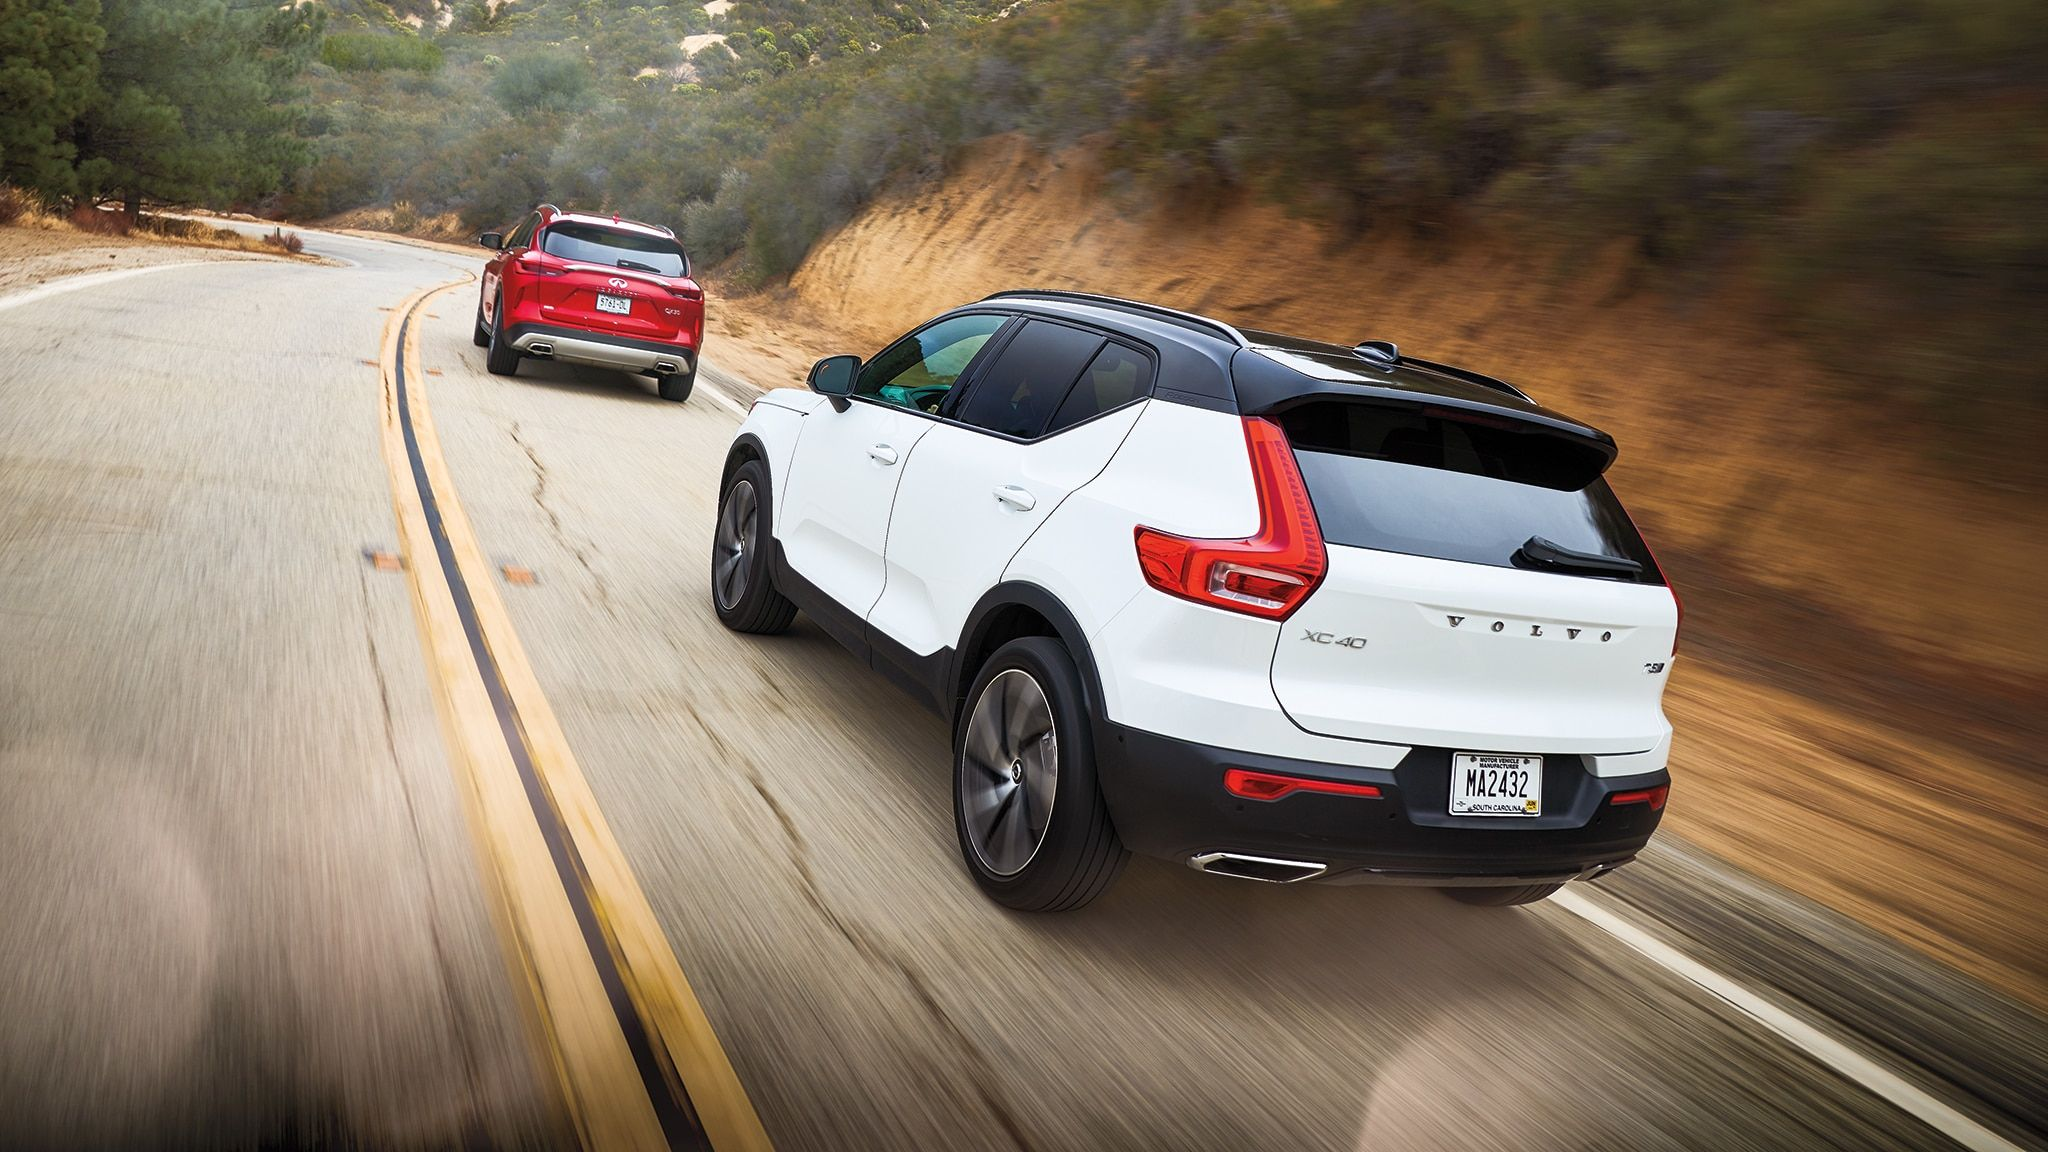 The 2019 Volvo Xc40 Is An Endearingly Different Baby Volvo Online Top Products Allstars Carawards Latestnews Amaz Volvo Best Amazon Products New Cars